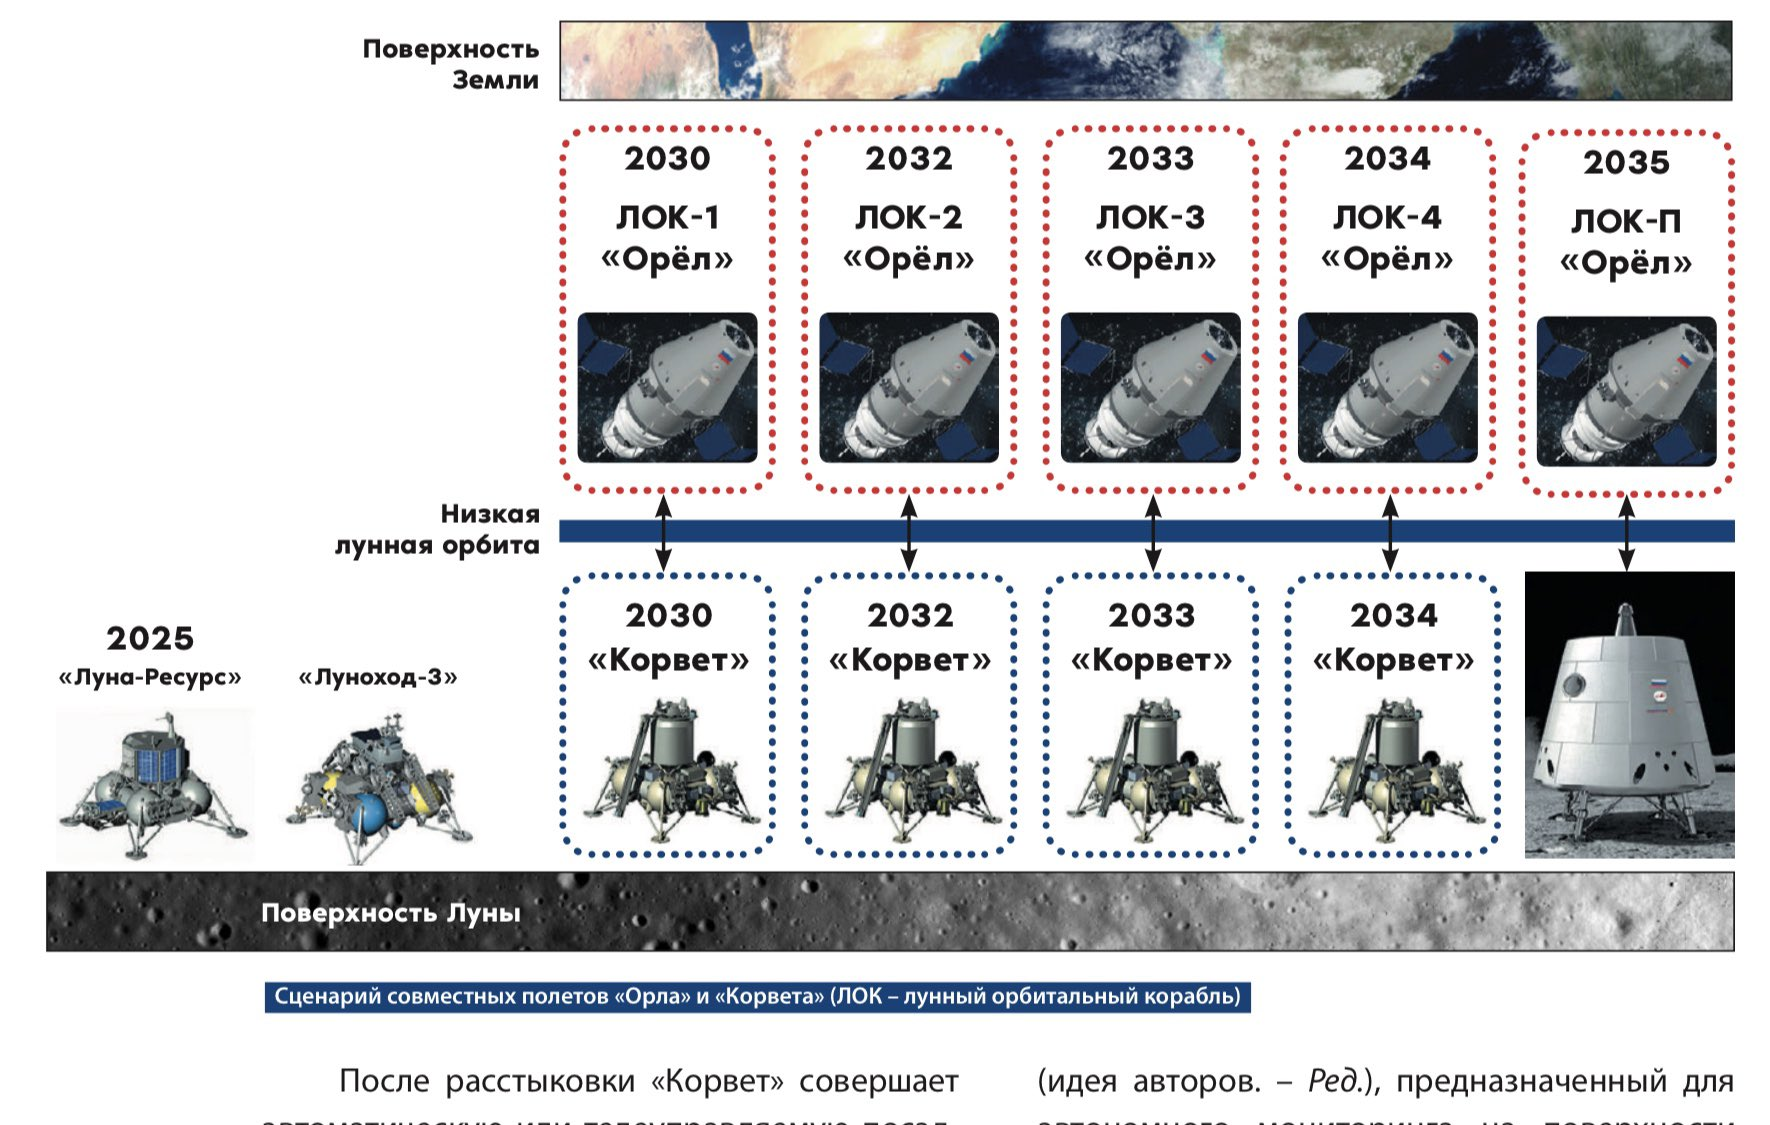 Programme spatial russe - Page 2 Epy6_hbU8AAbvwh?format=jpg&name=large